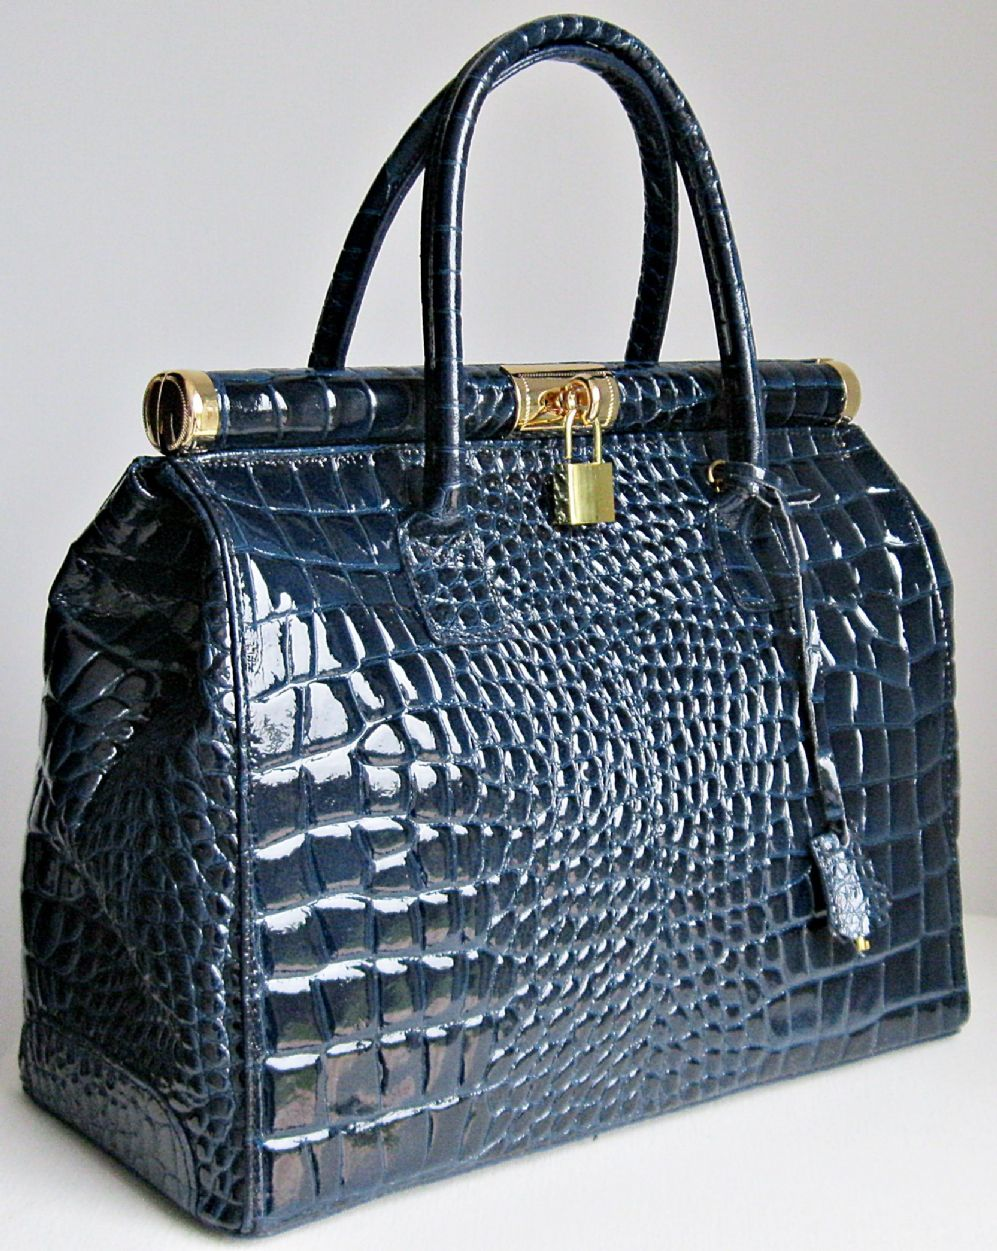 NAVY BLUE ITALIAN PATENT LEATHER MOCK CROC HANDBAG FRAMED GLADSTONE LG ...